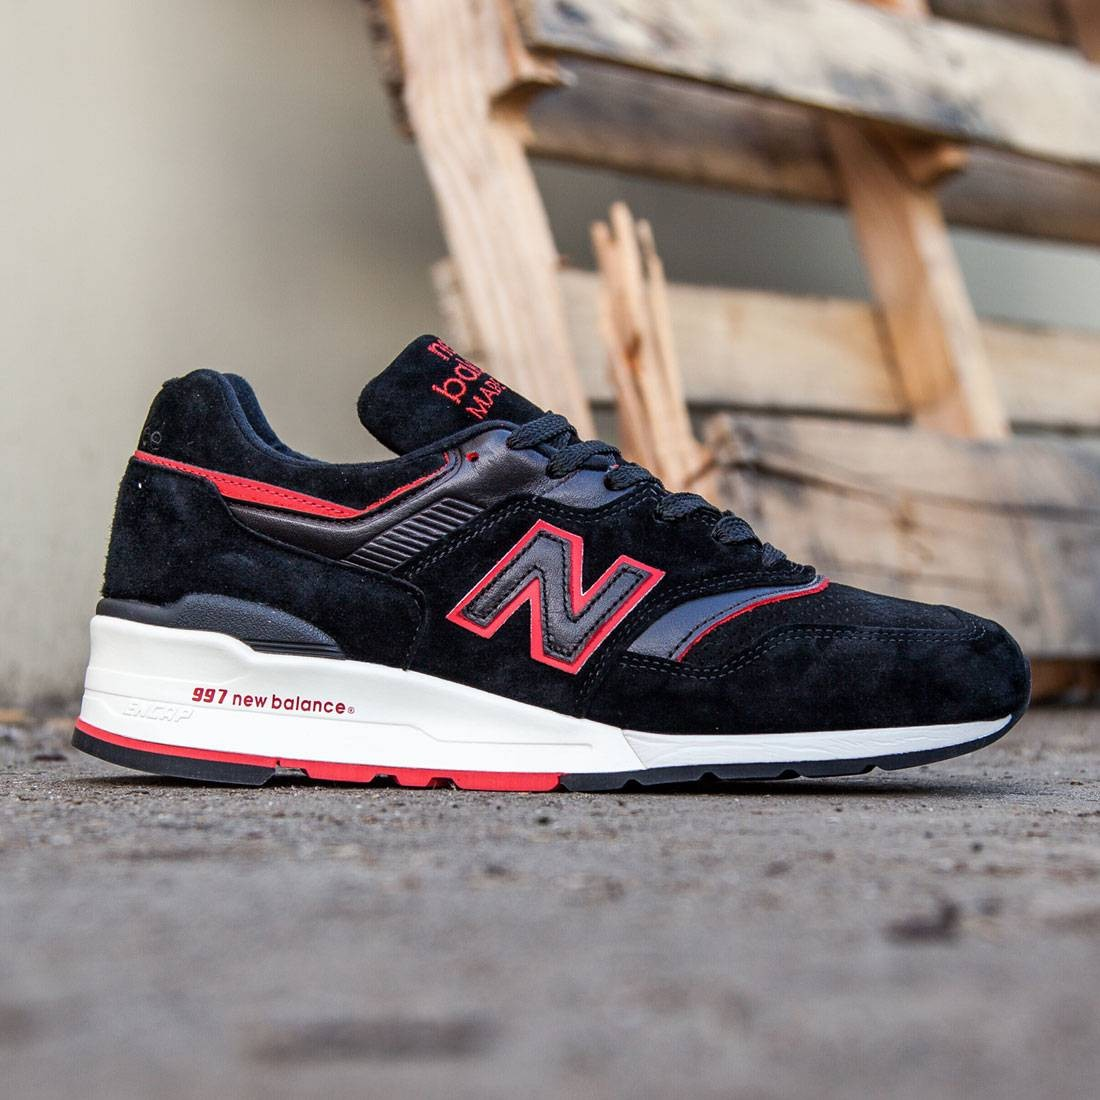 best sneakers 0fe14 d0b7d New Balance Men 997 Air Exploration M997DEXP - Made In USA (black / red)